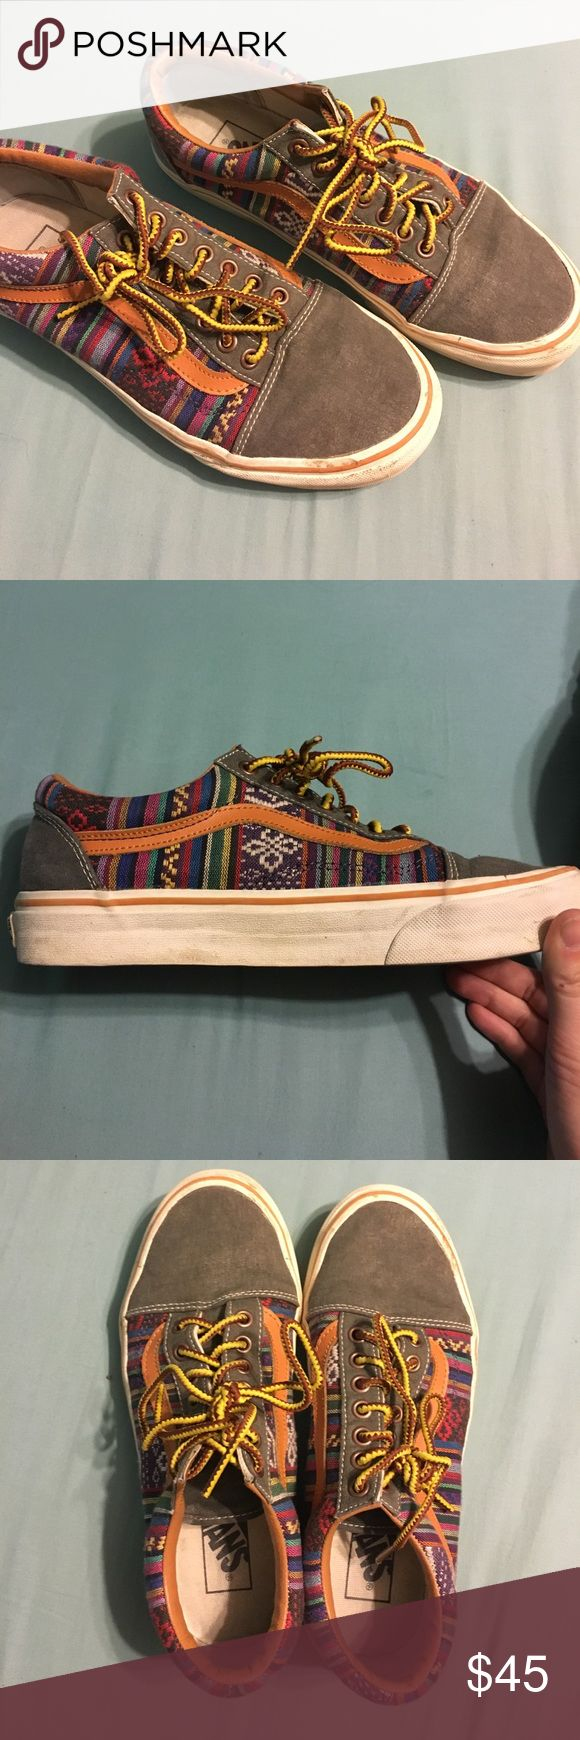 RARE Vans Sk8 Tribal Shoes Super rare and hard to find. Bought back in 2014/2015 and have worn five-ten times tops. Love the pattern but don't wear as much as a should. Men's size 7, women's size 8.5. TTS. Offers welcome, low-balls ignored. Vans Shoes Sneakers